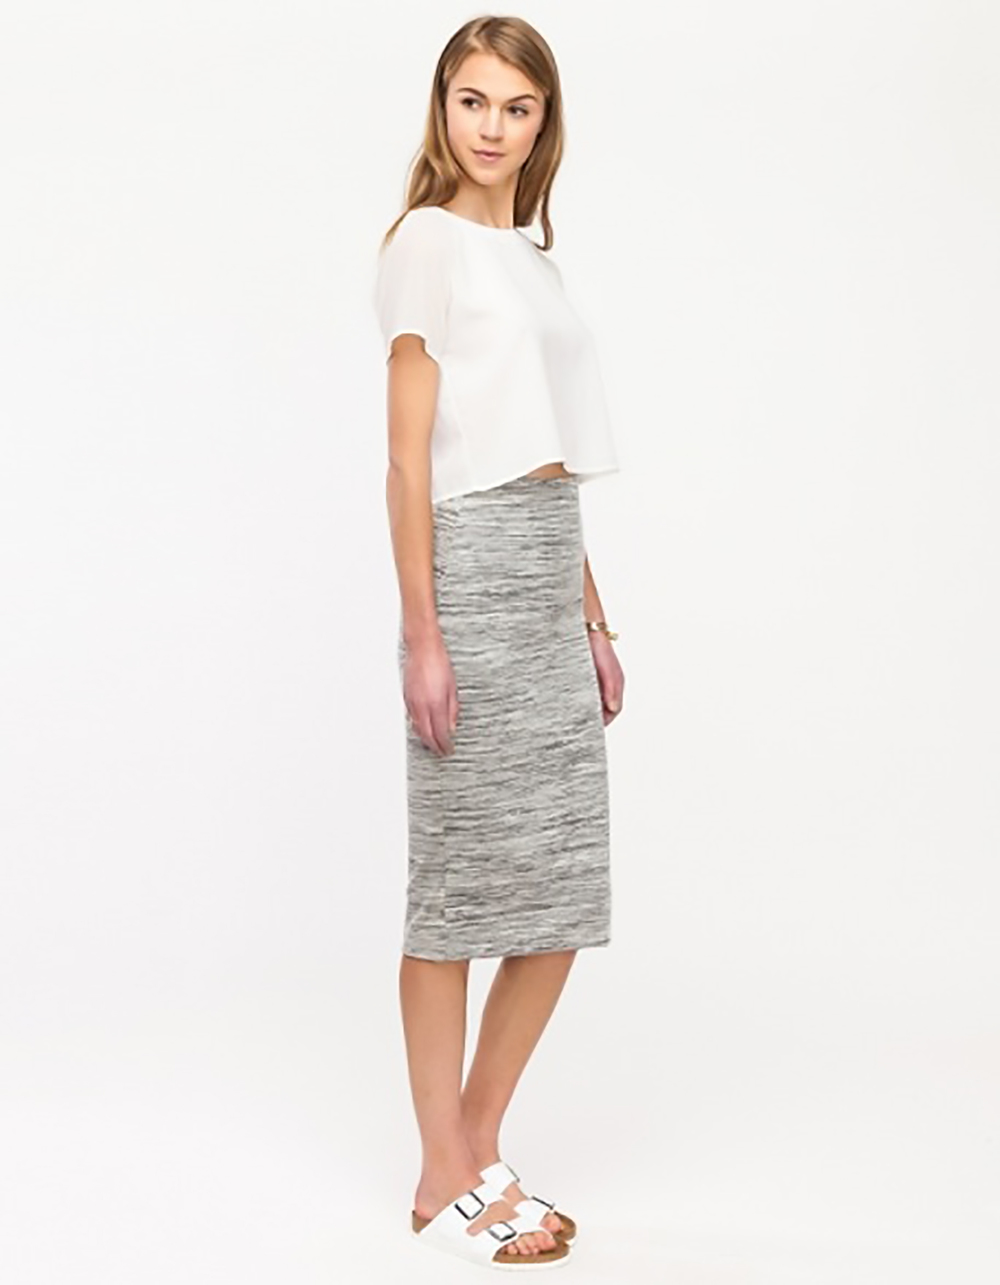 need supply london midi skirt midis 1500.jpg